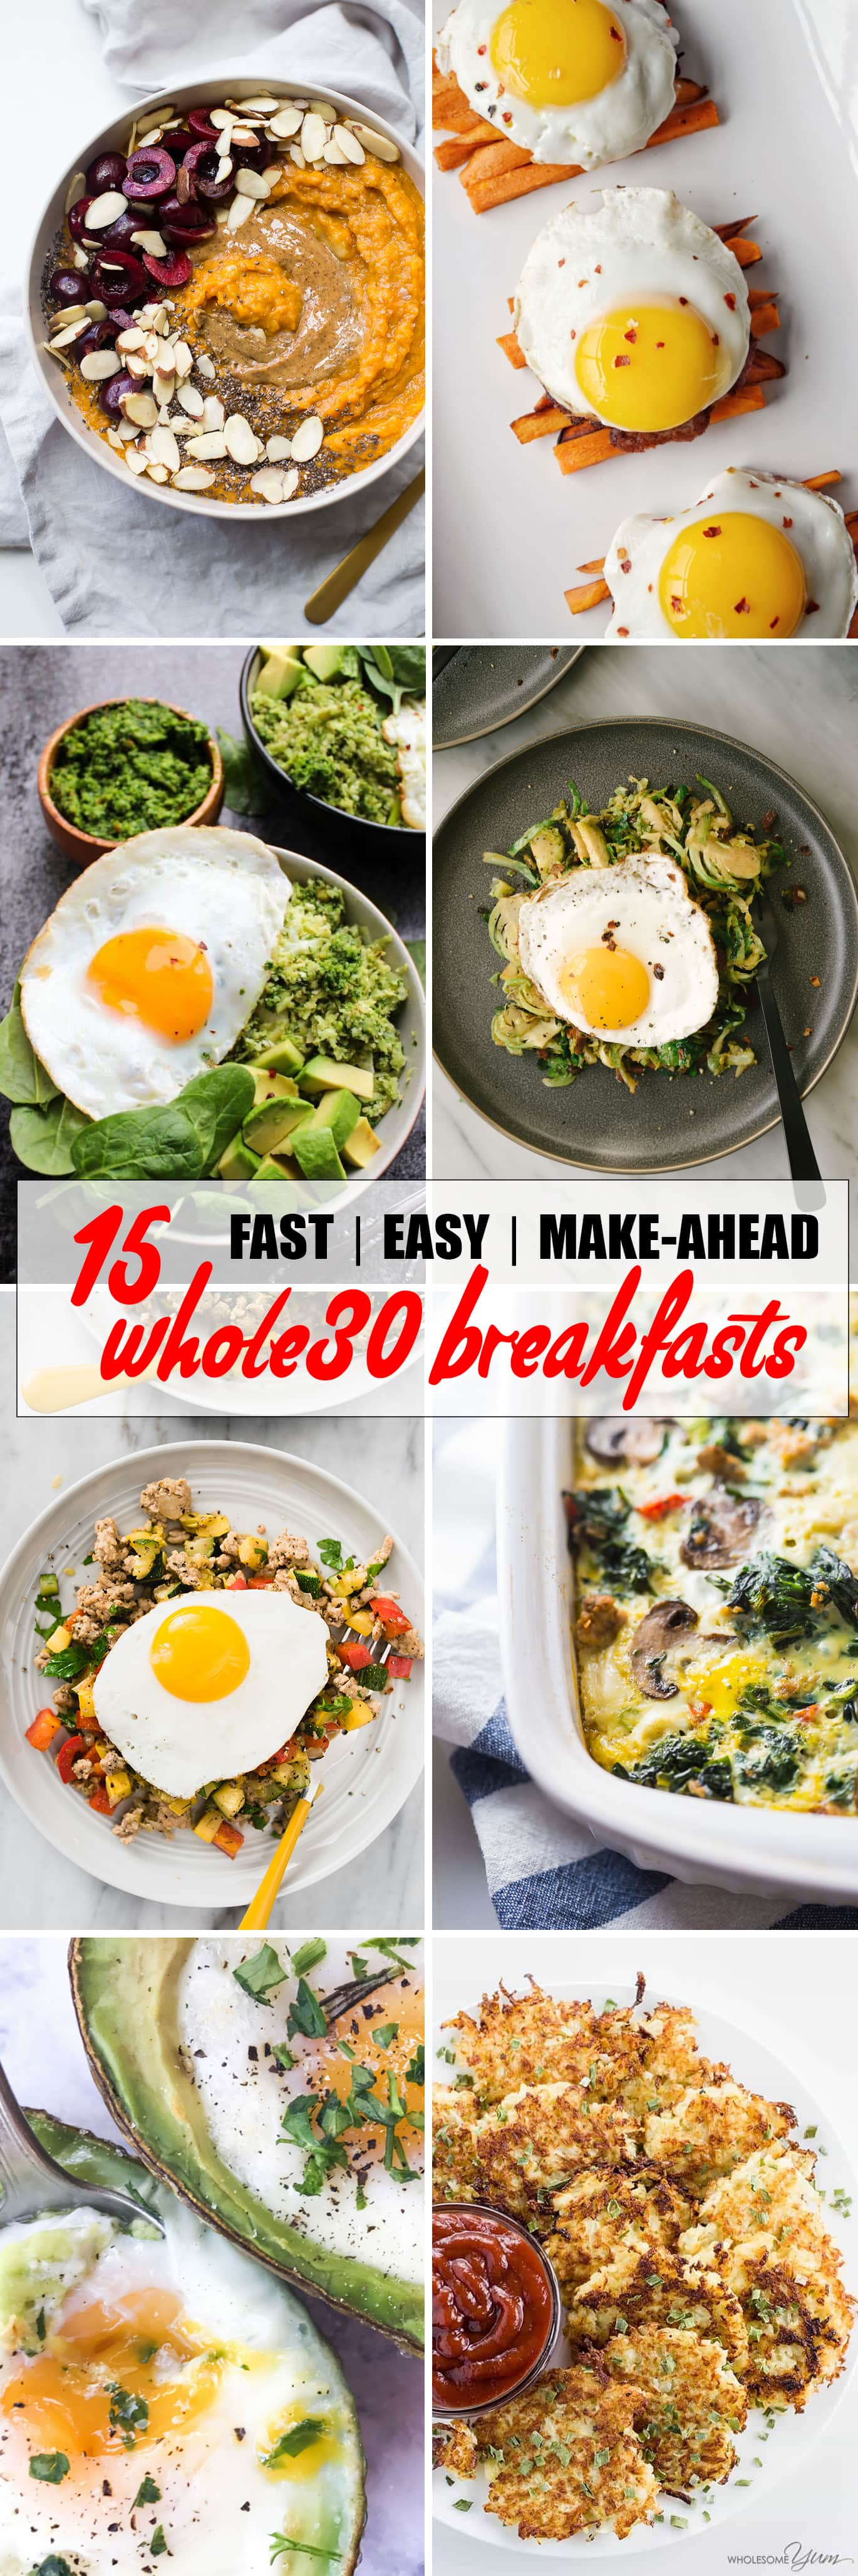 These easy, fast, and/or make ahead Whole30 and paleo breakfast recipes will make your morning rock! Everything you need for delicious, satisfying breakfasts to crush your Whole30! #whole30 #paleo #breakfast #recipes #makeahead #easy #fast